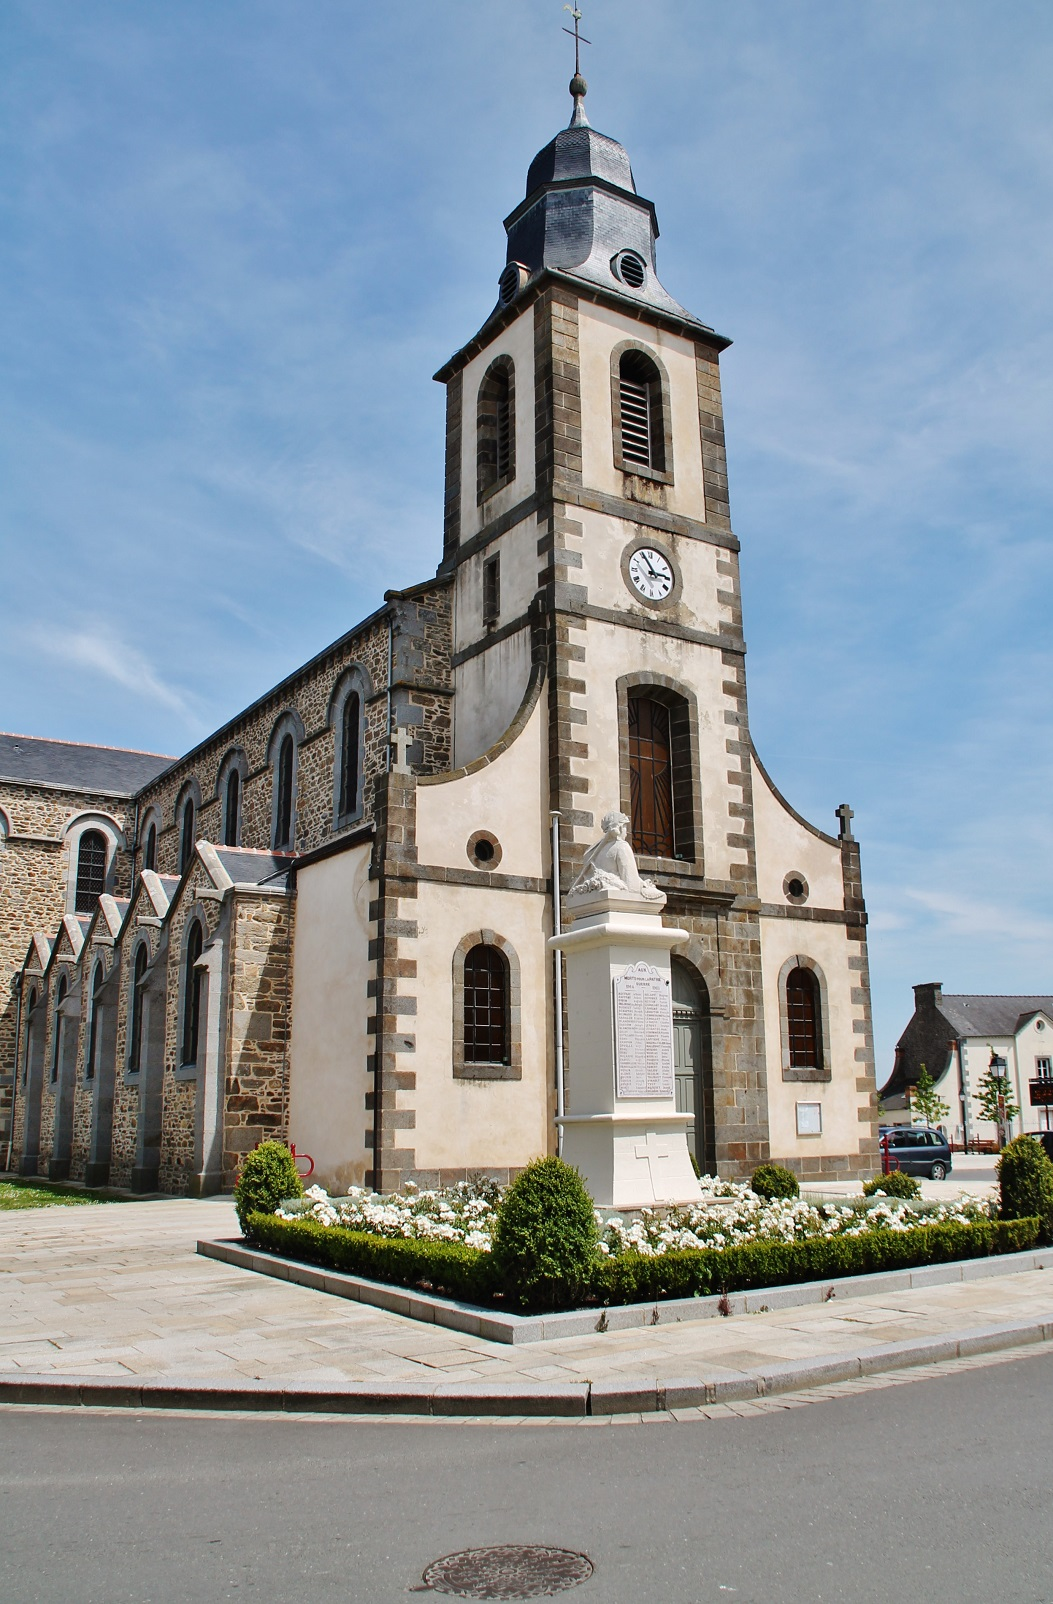 Parish church of St. John the Baptist, French Heritage monument to St jouan des guerets.